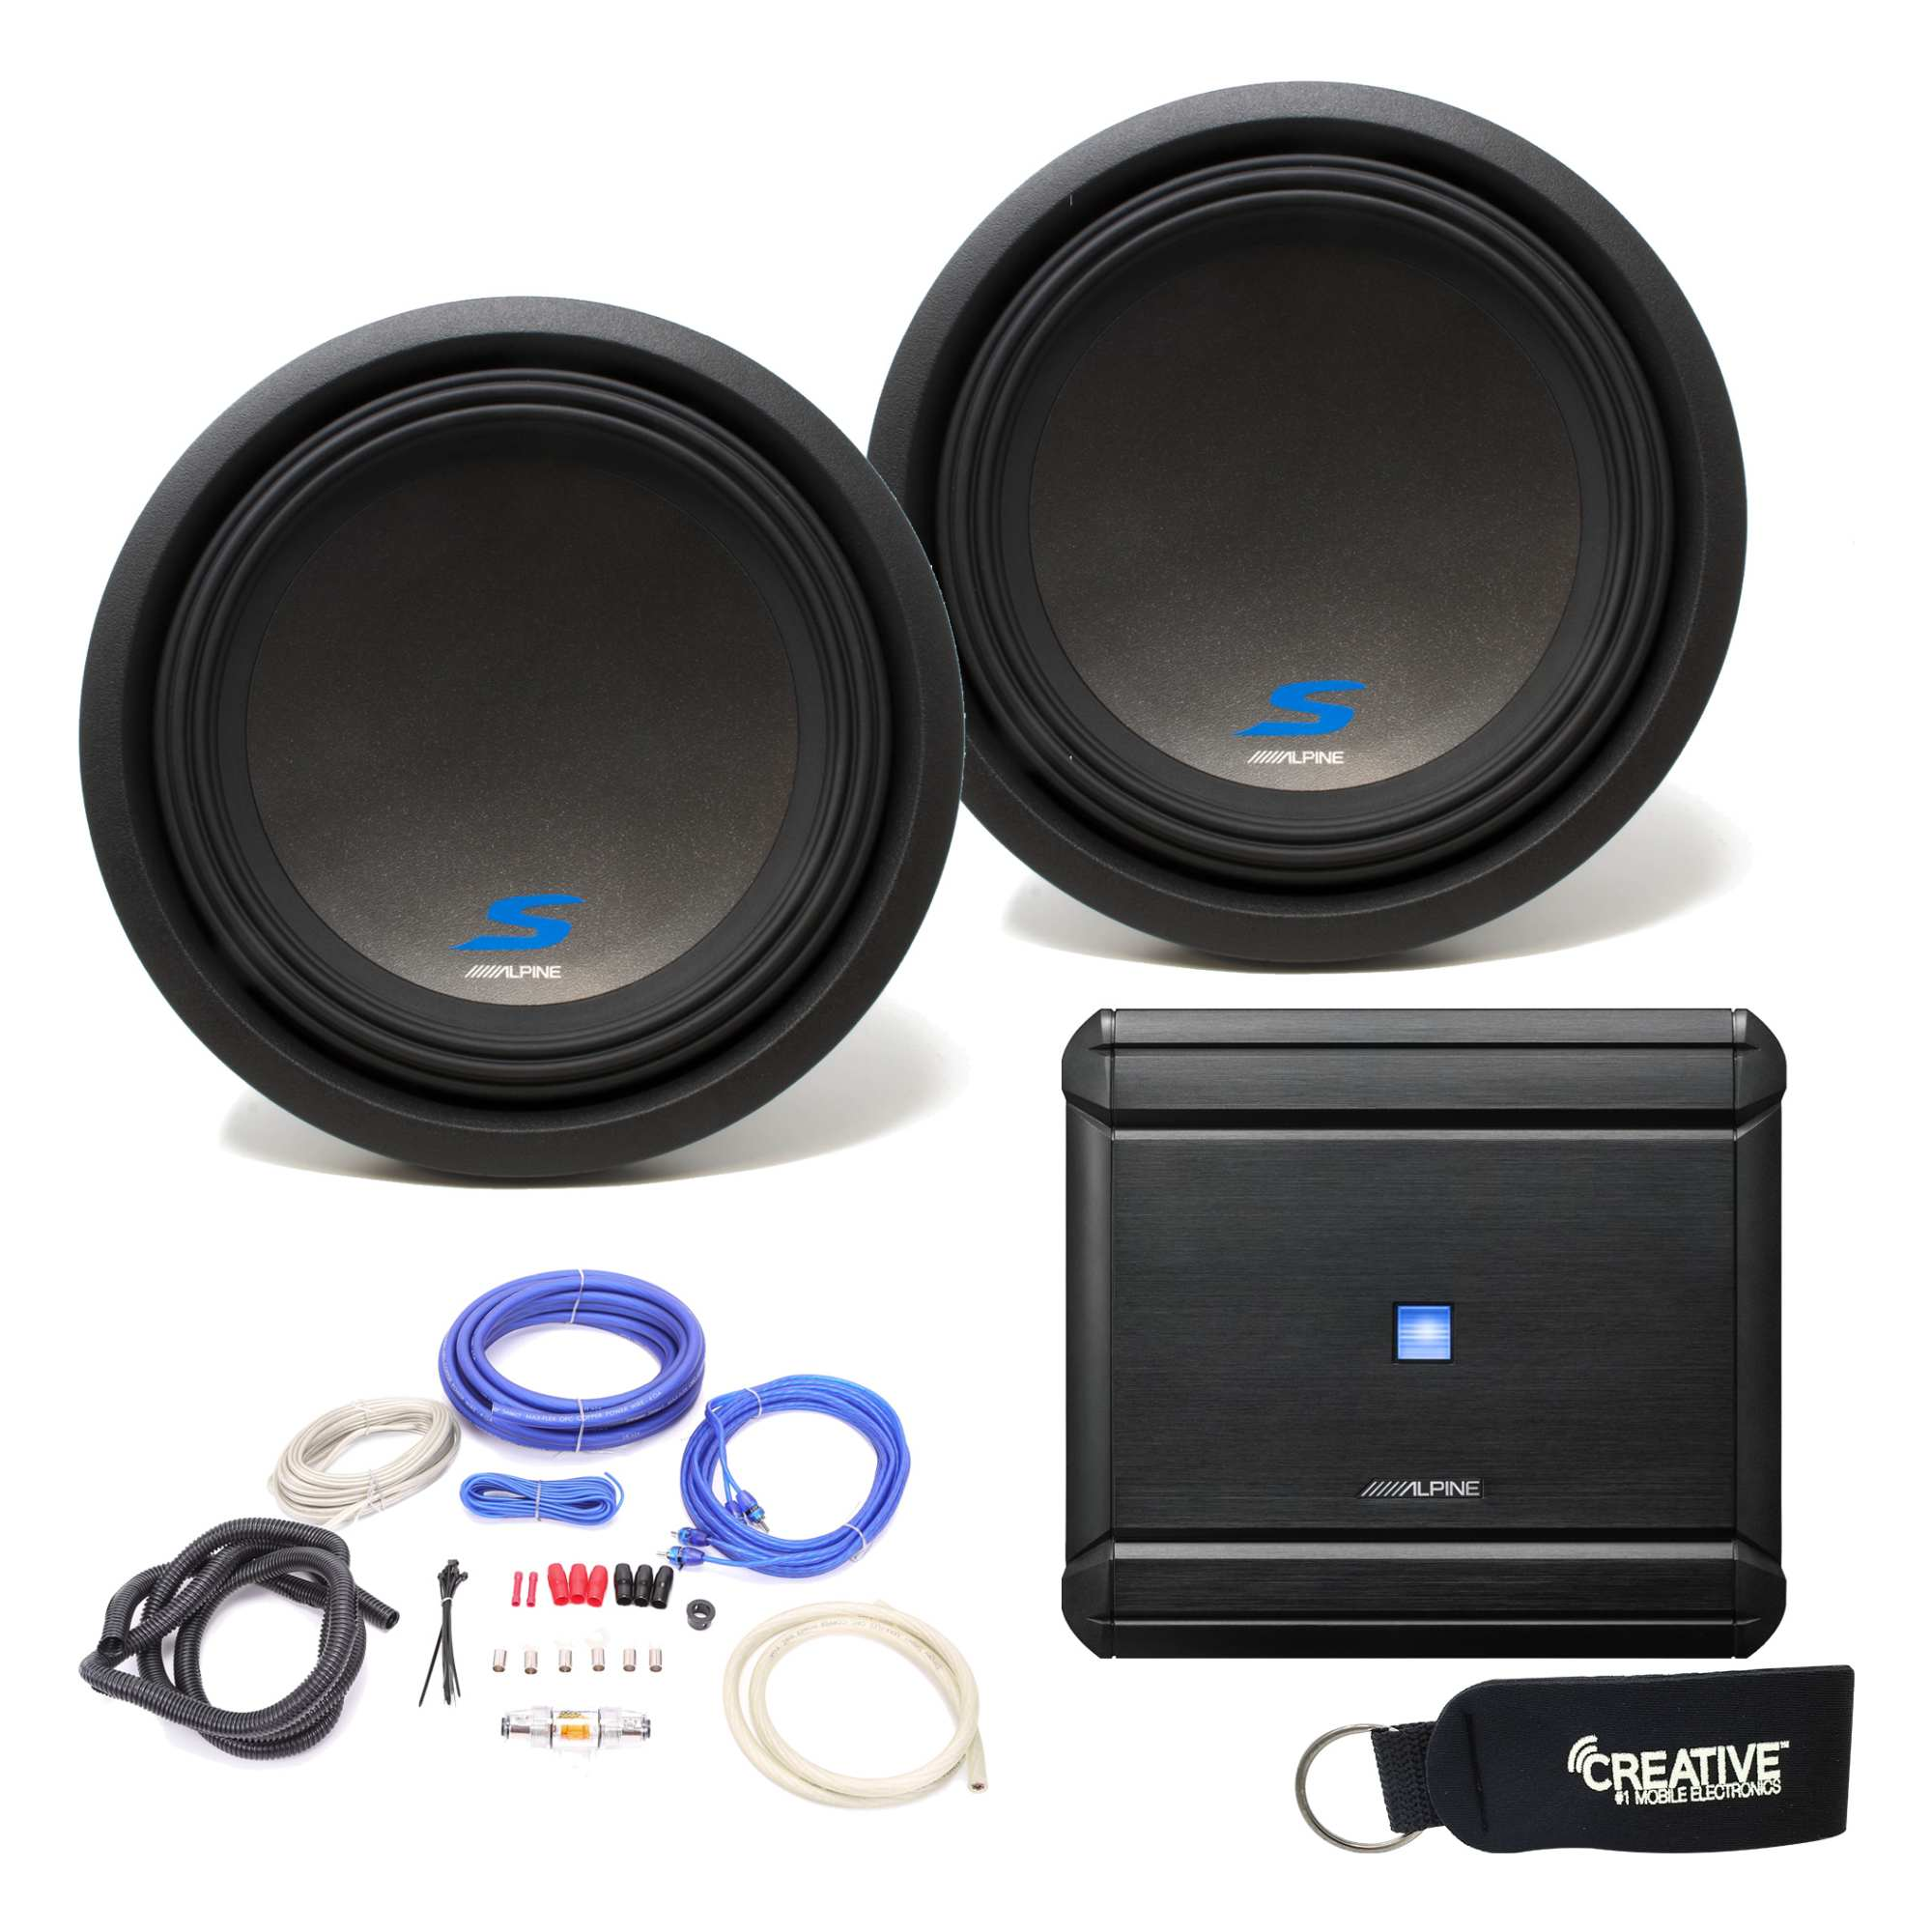 Alpine Mrv M500 Amp And Two S W12d2 Series 12 Dual 2 Ohm Subs Wiring Kit 1600w 4 Channel Digital Bridgeable Amplifier Pro Don T Subwoofers Includes Wire